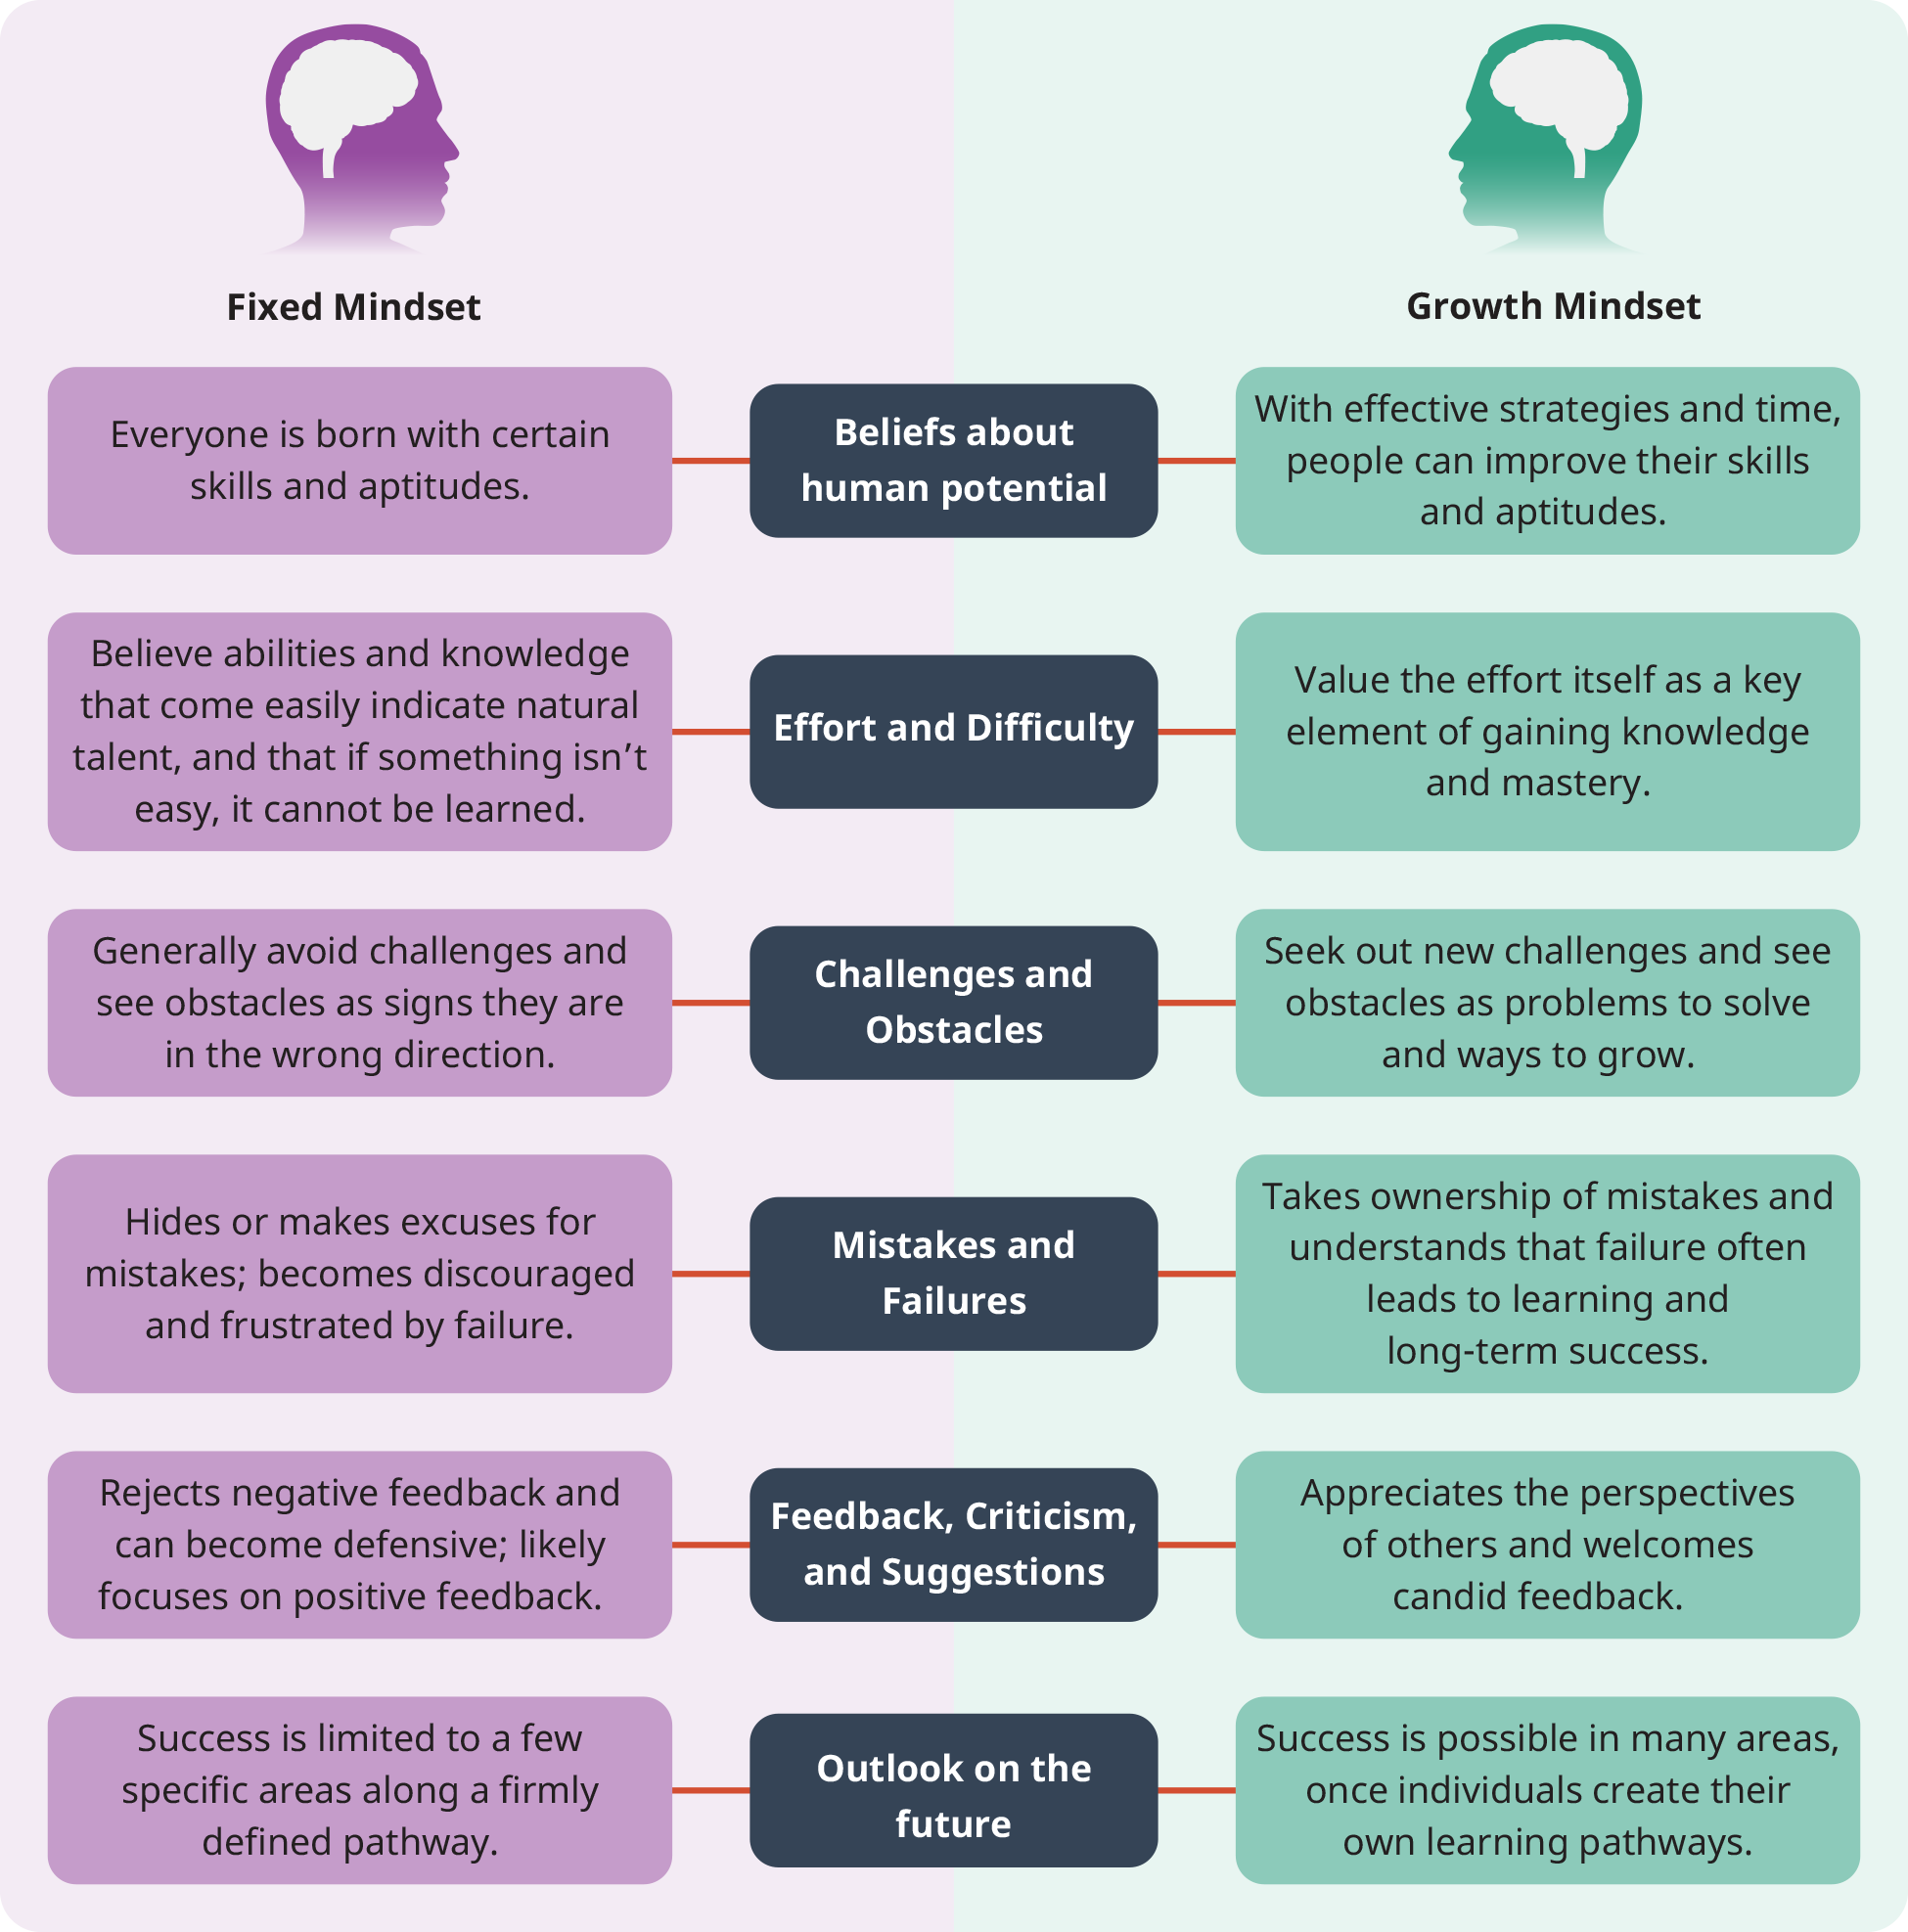 """A diagram illustrates the comparison between """"Fixed Mindset"""" and """"Growth Mindset"""" based on six different parameters."""